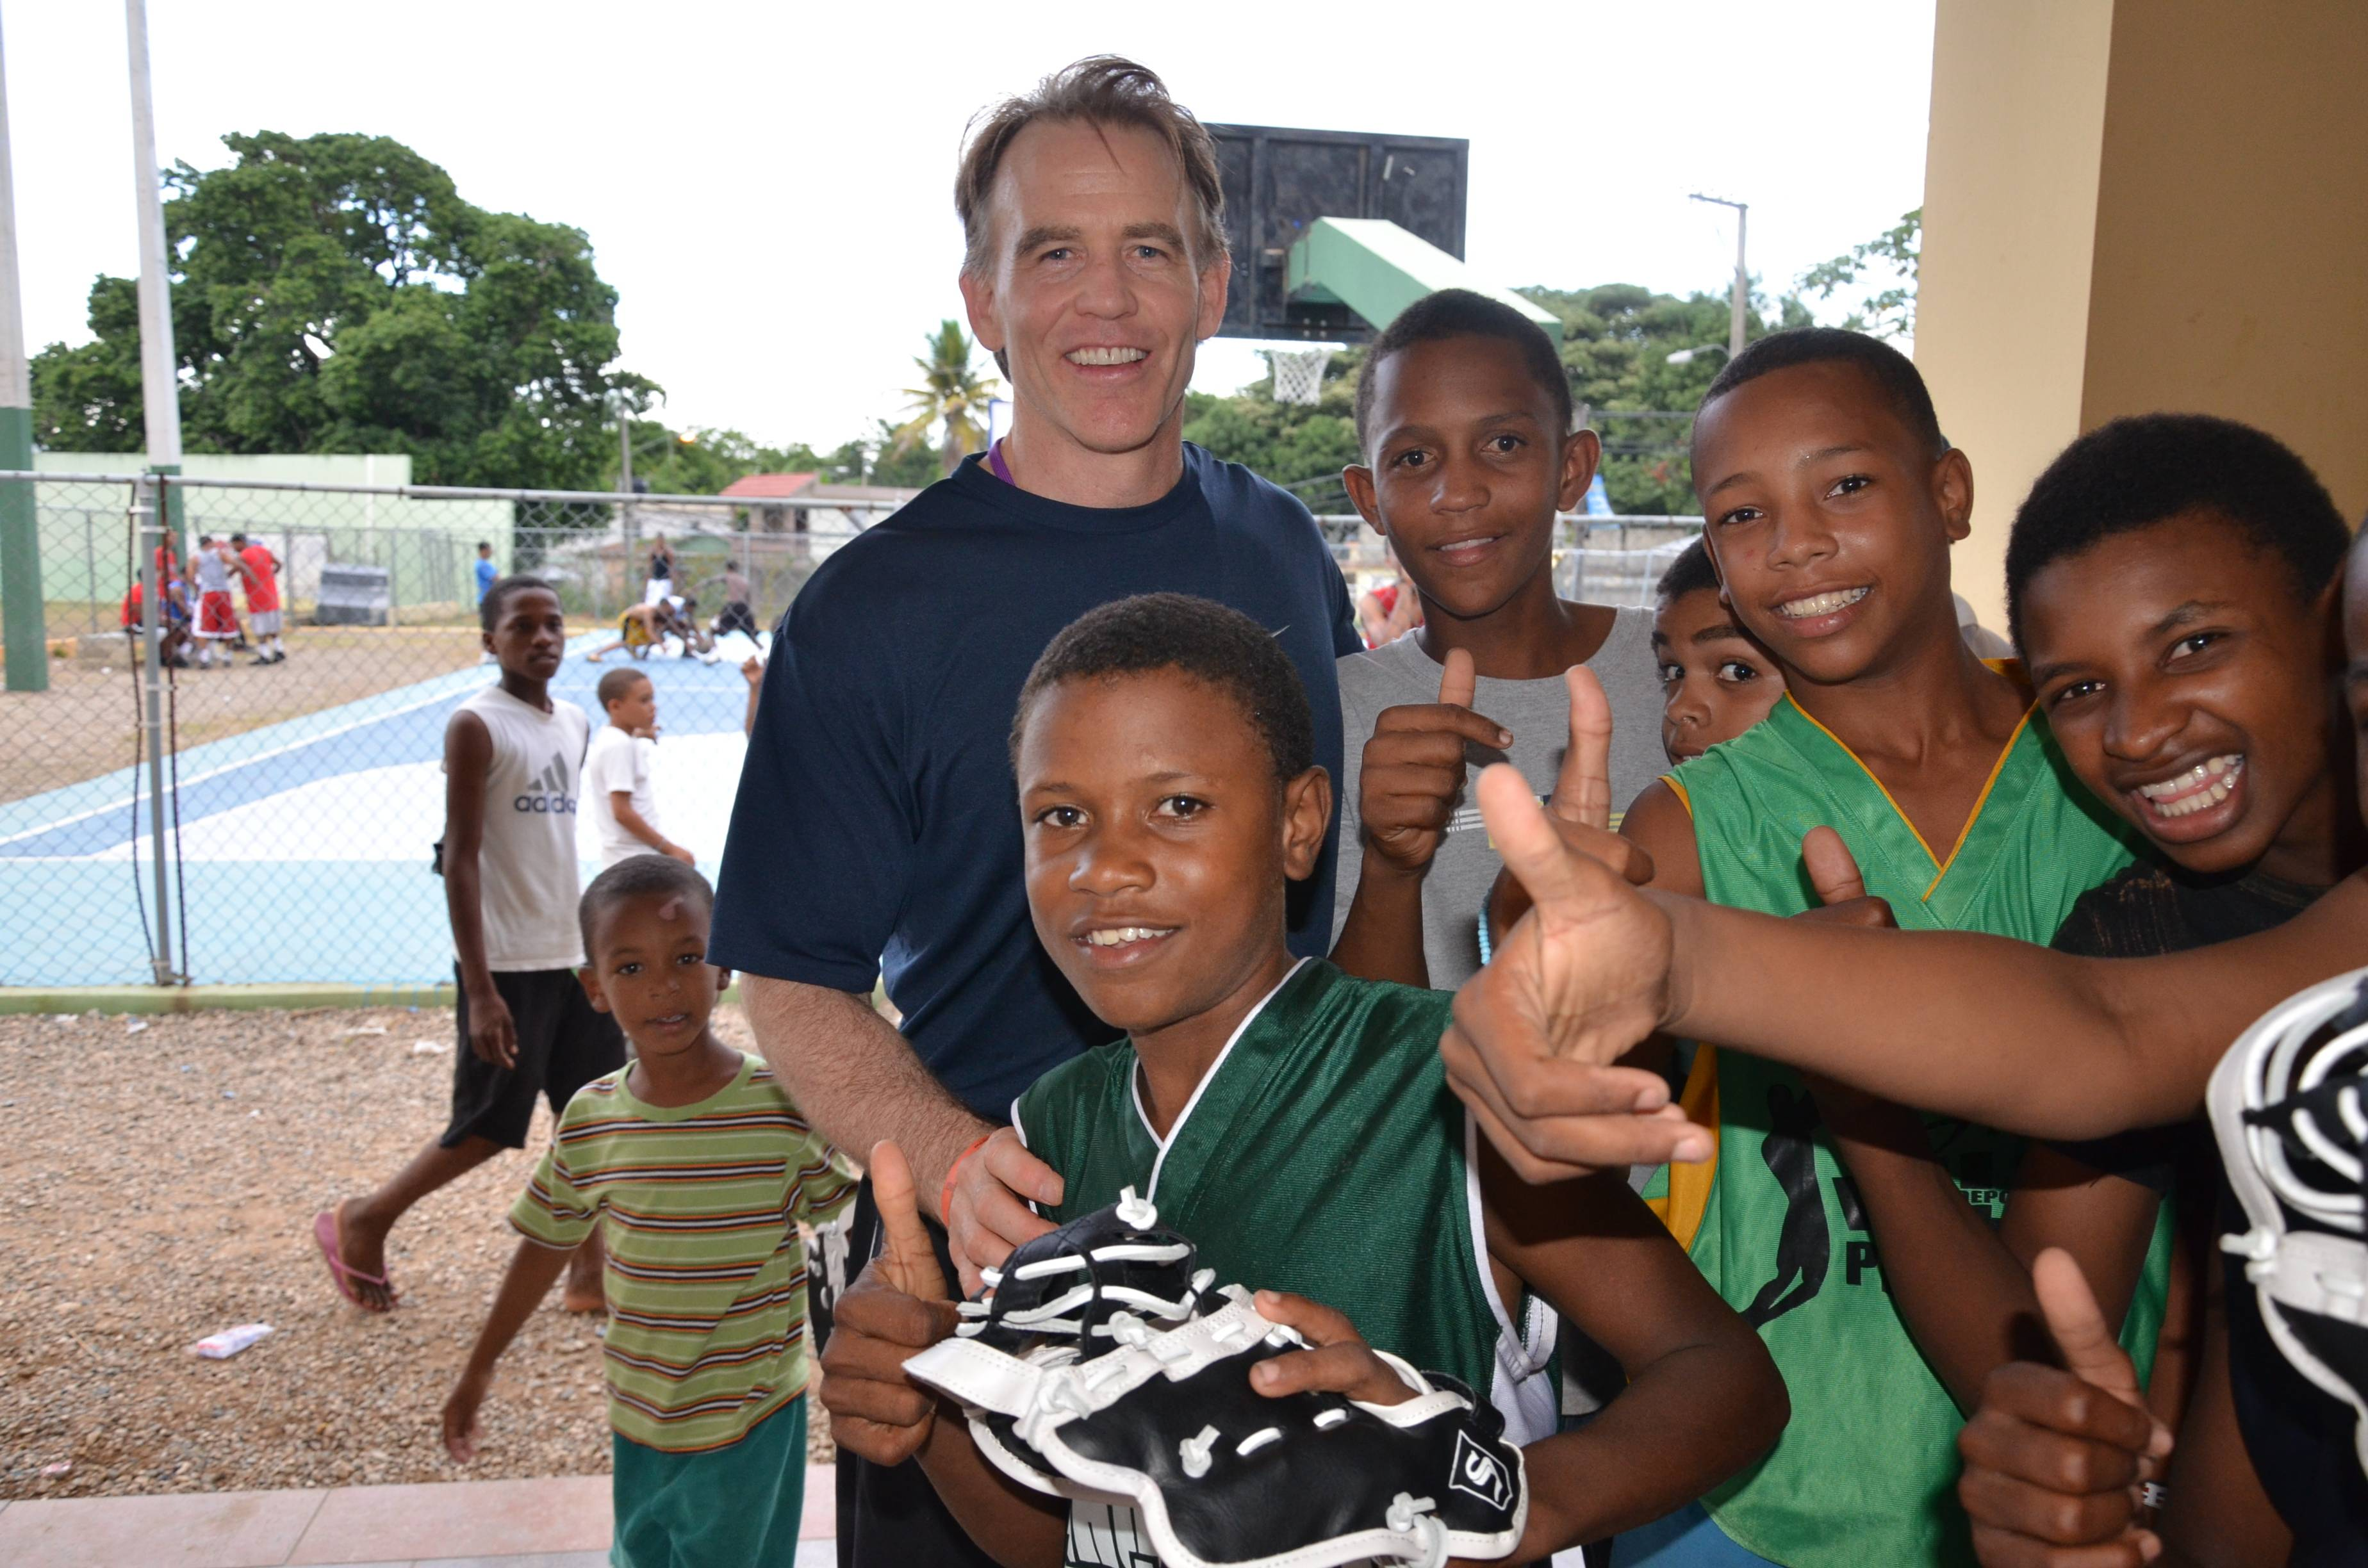 Gear for Goals' Founder & Director, Dr. Warren Bruhl brings baseball equipment and love of sports to children of the Dominican Republic.